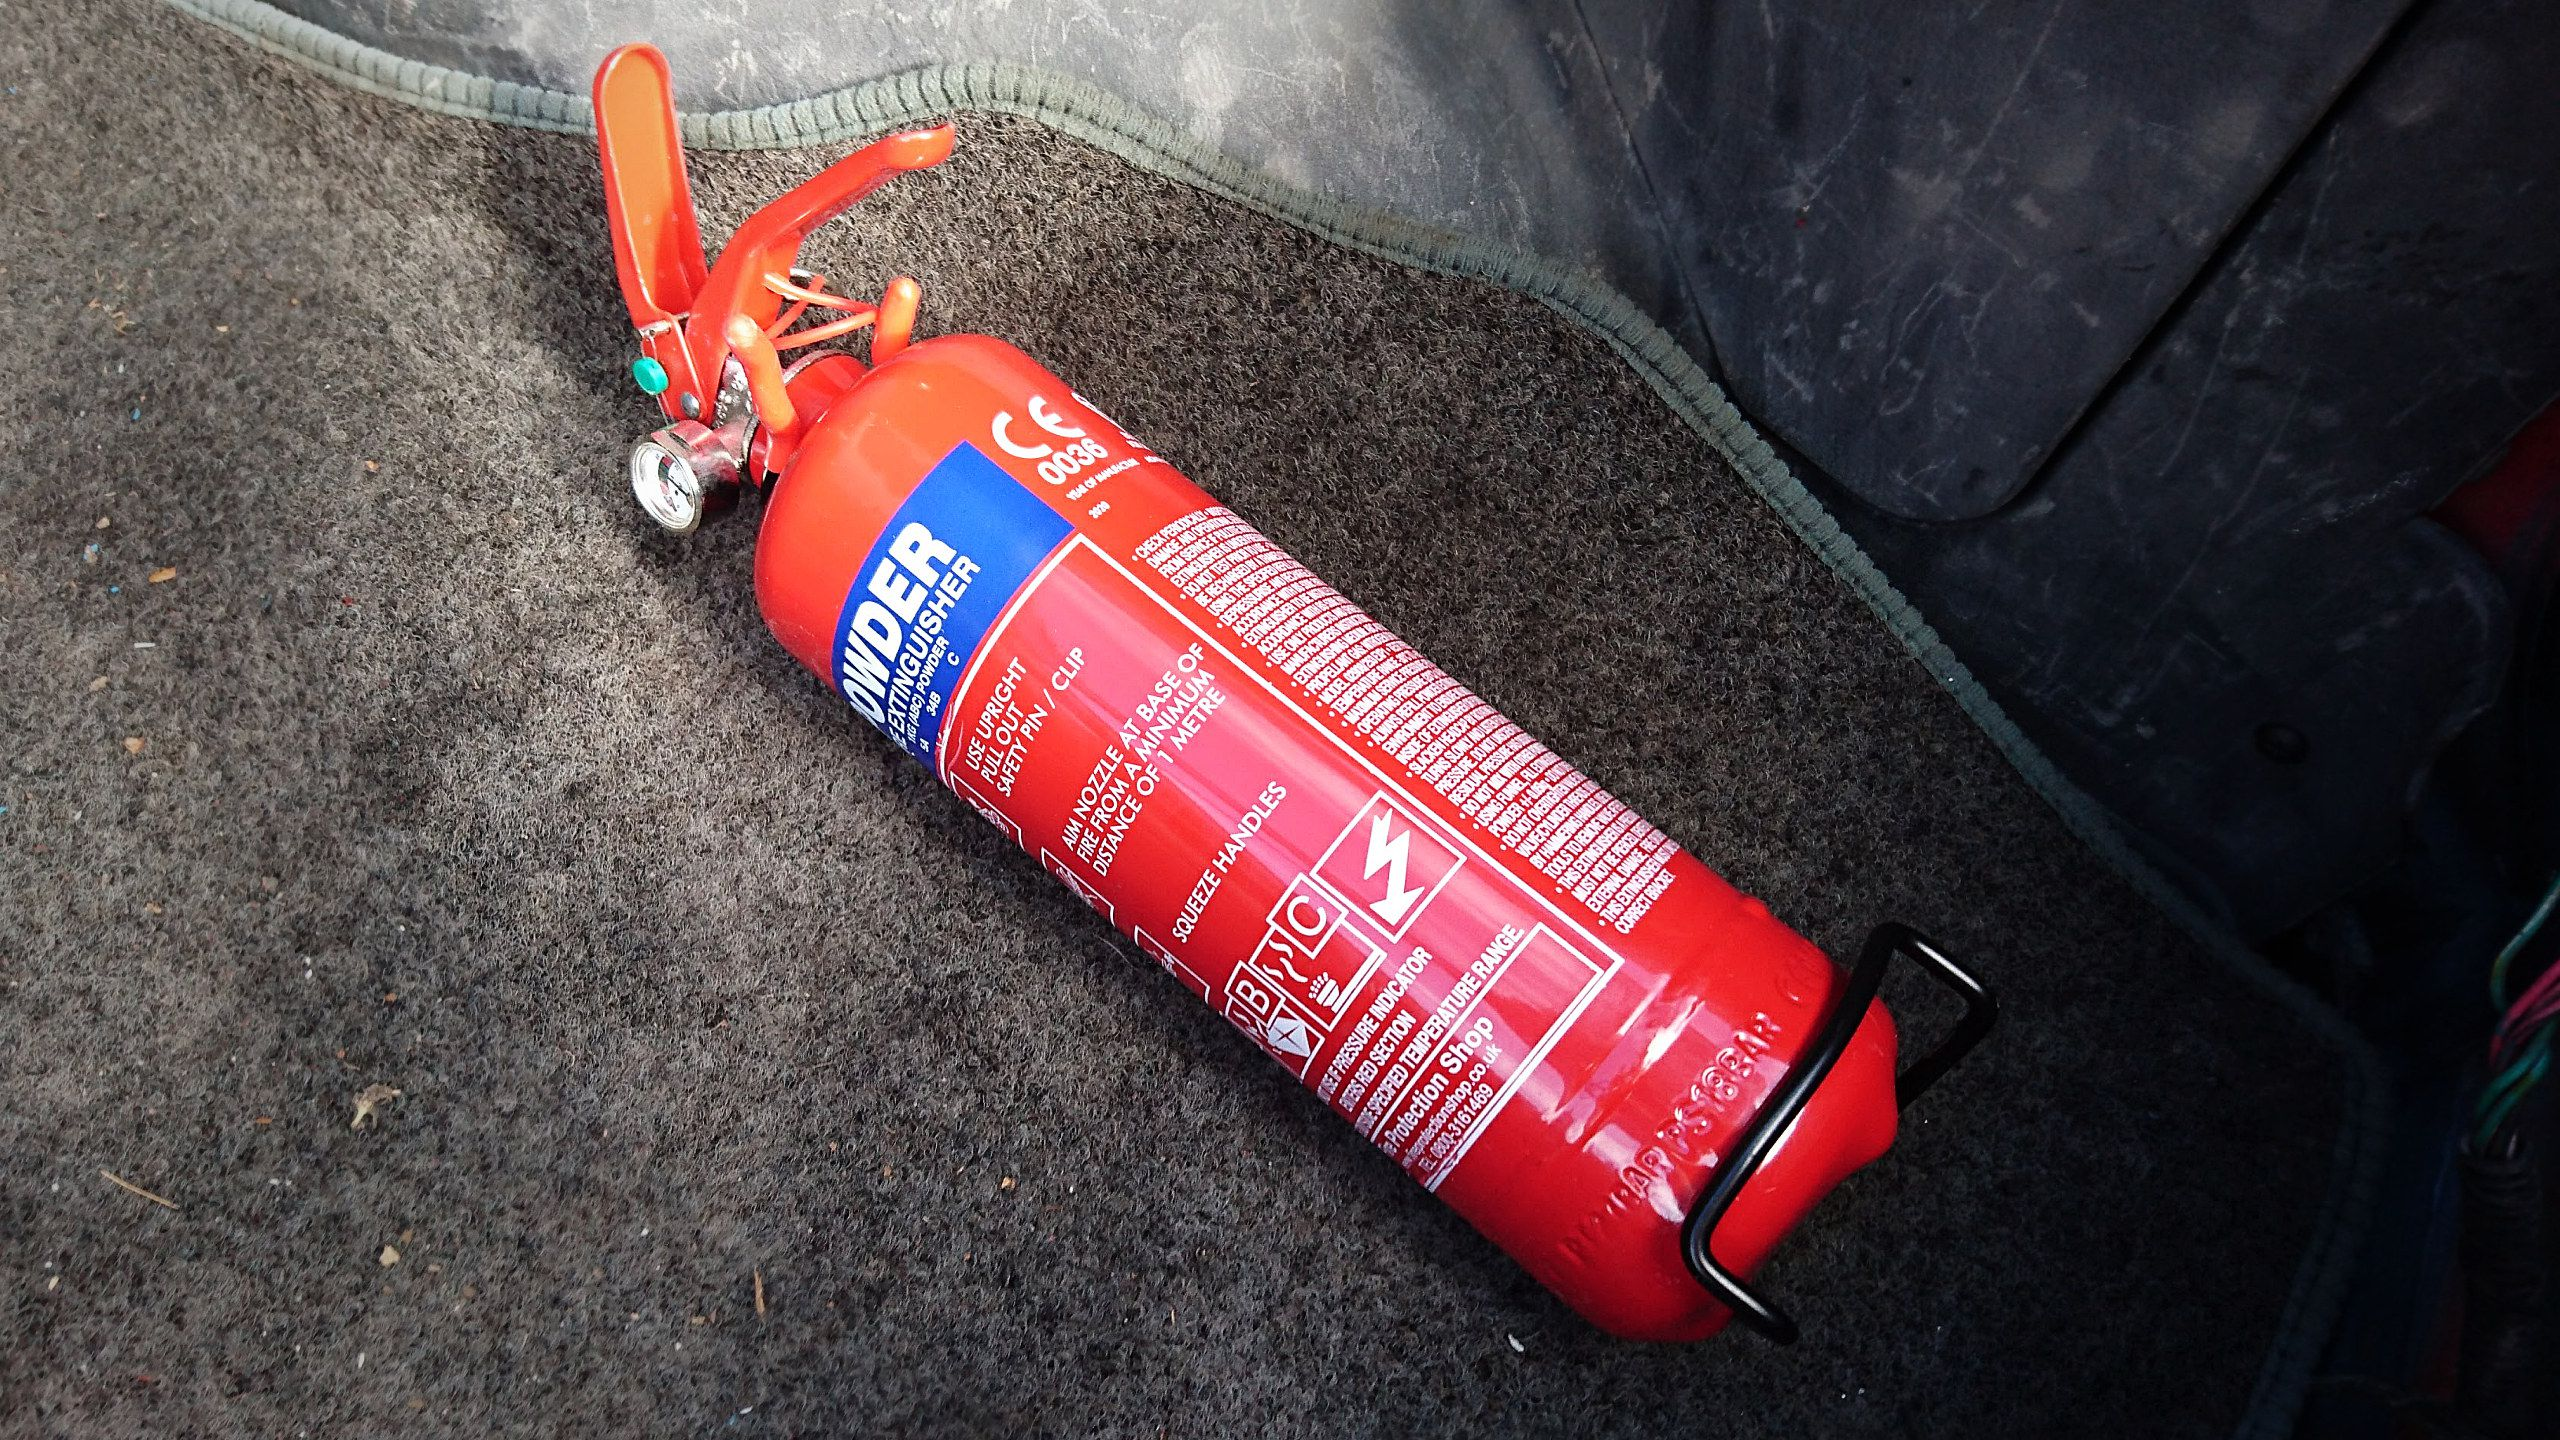 Fire extinguisher fitted in the boot